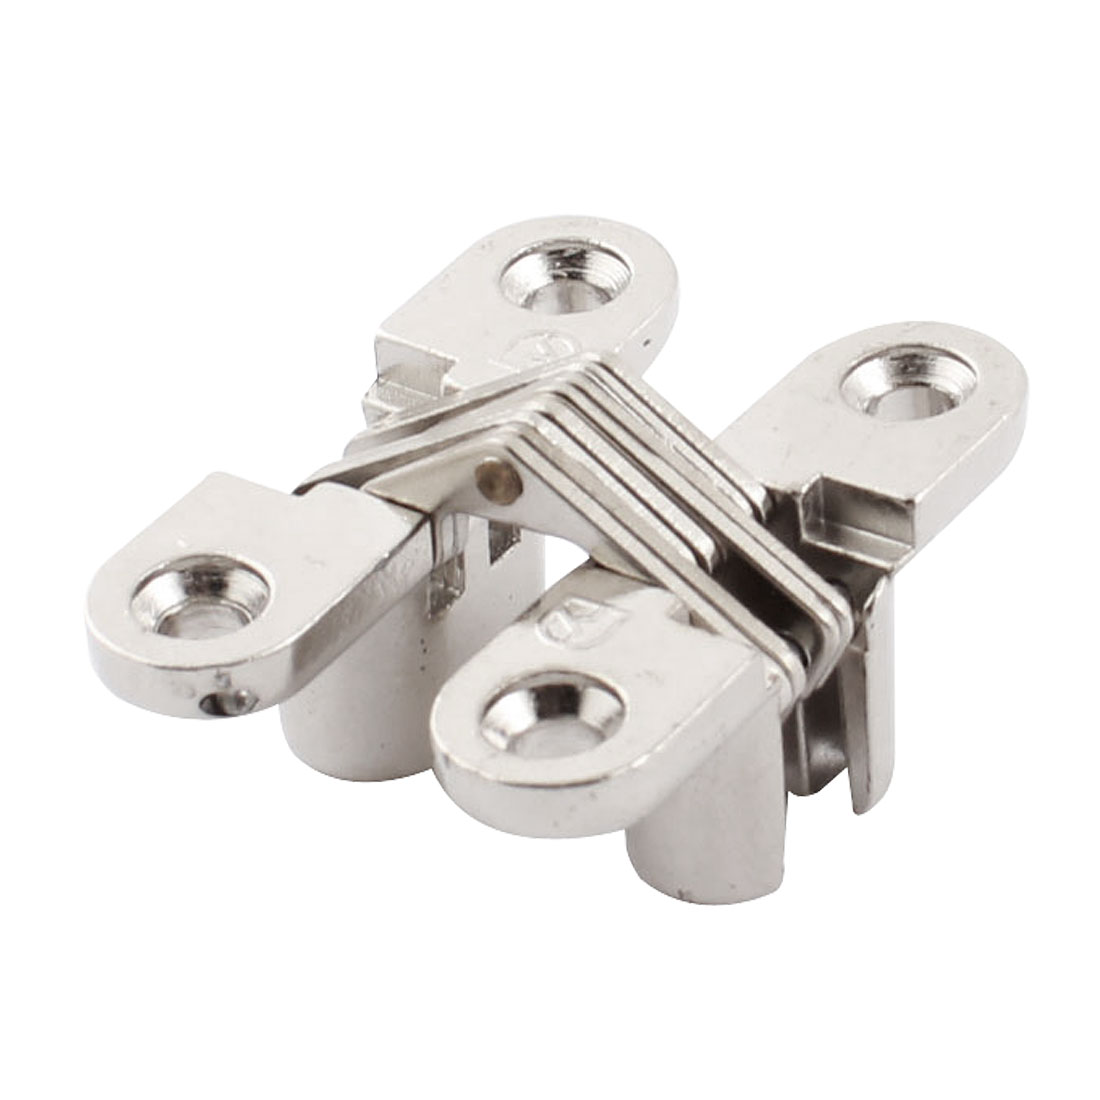 "43mm 1.7"" Length Silver Tone Metal Folding Sliding Door Furniture Cross Hinge"